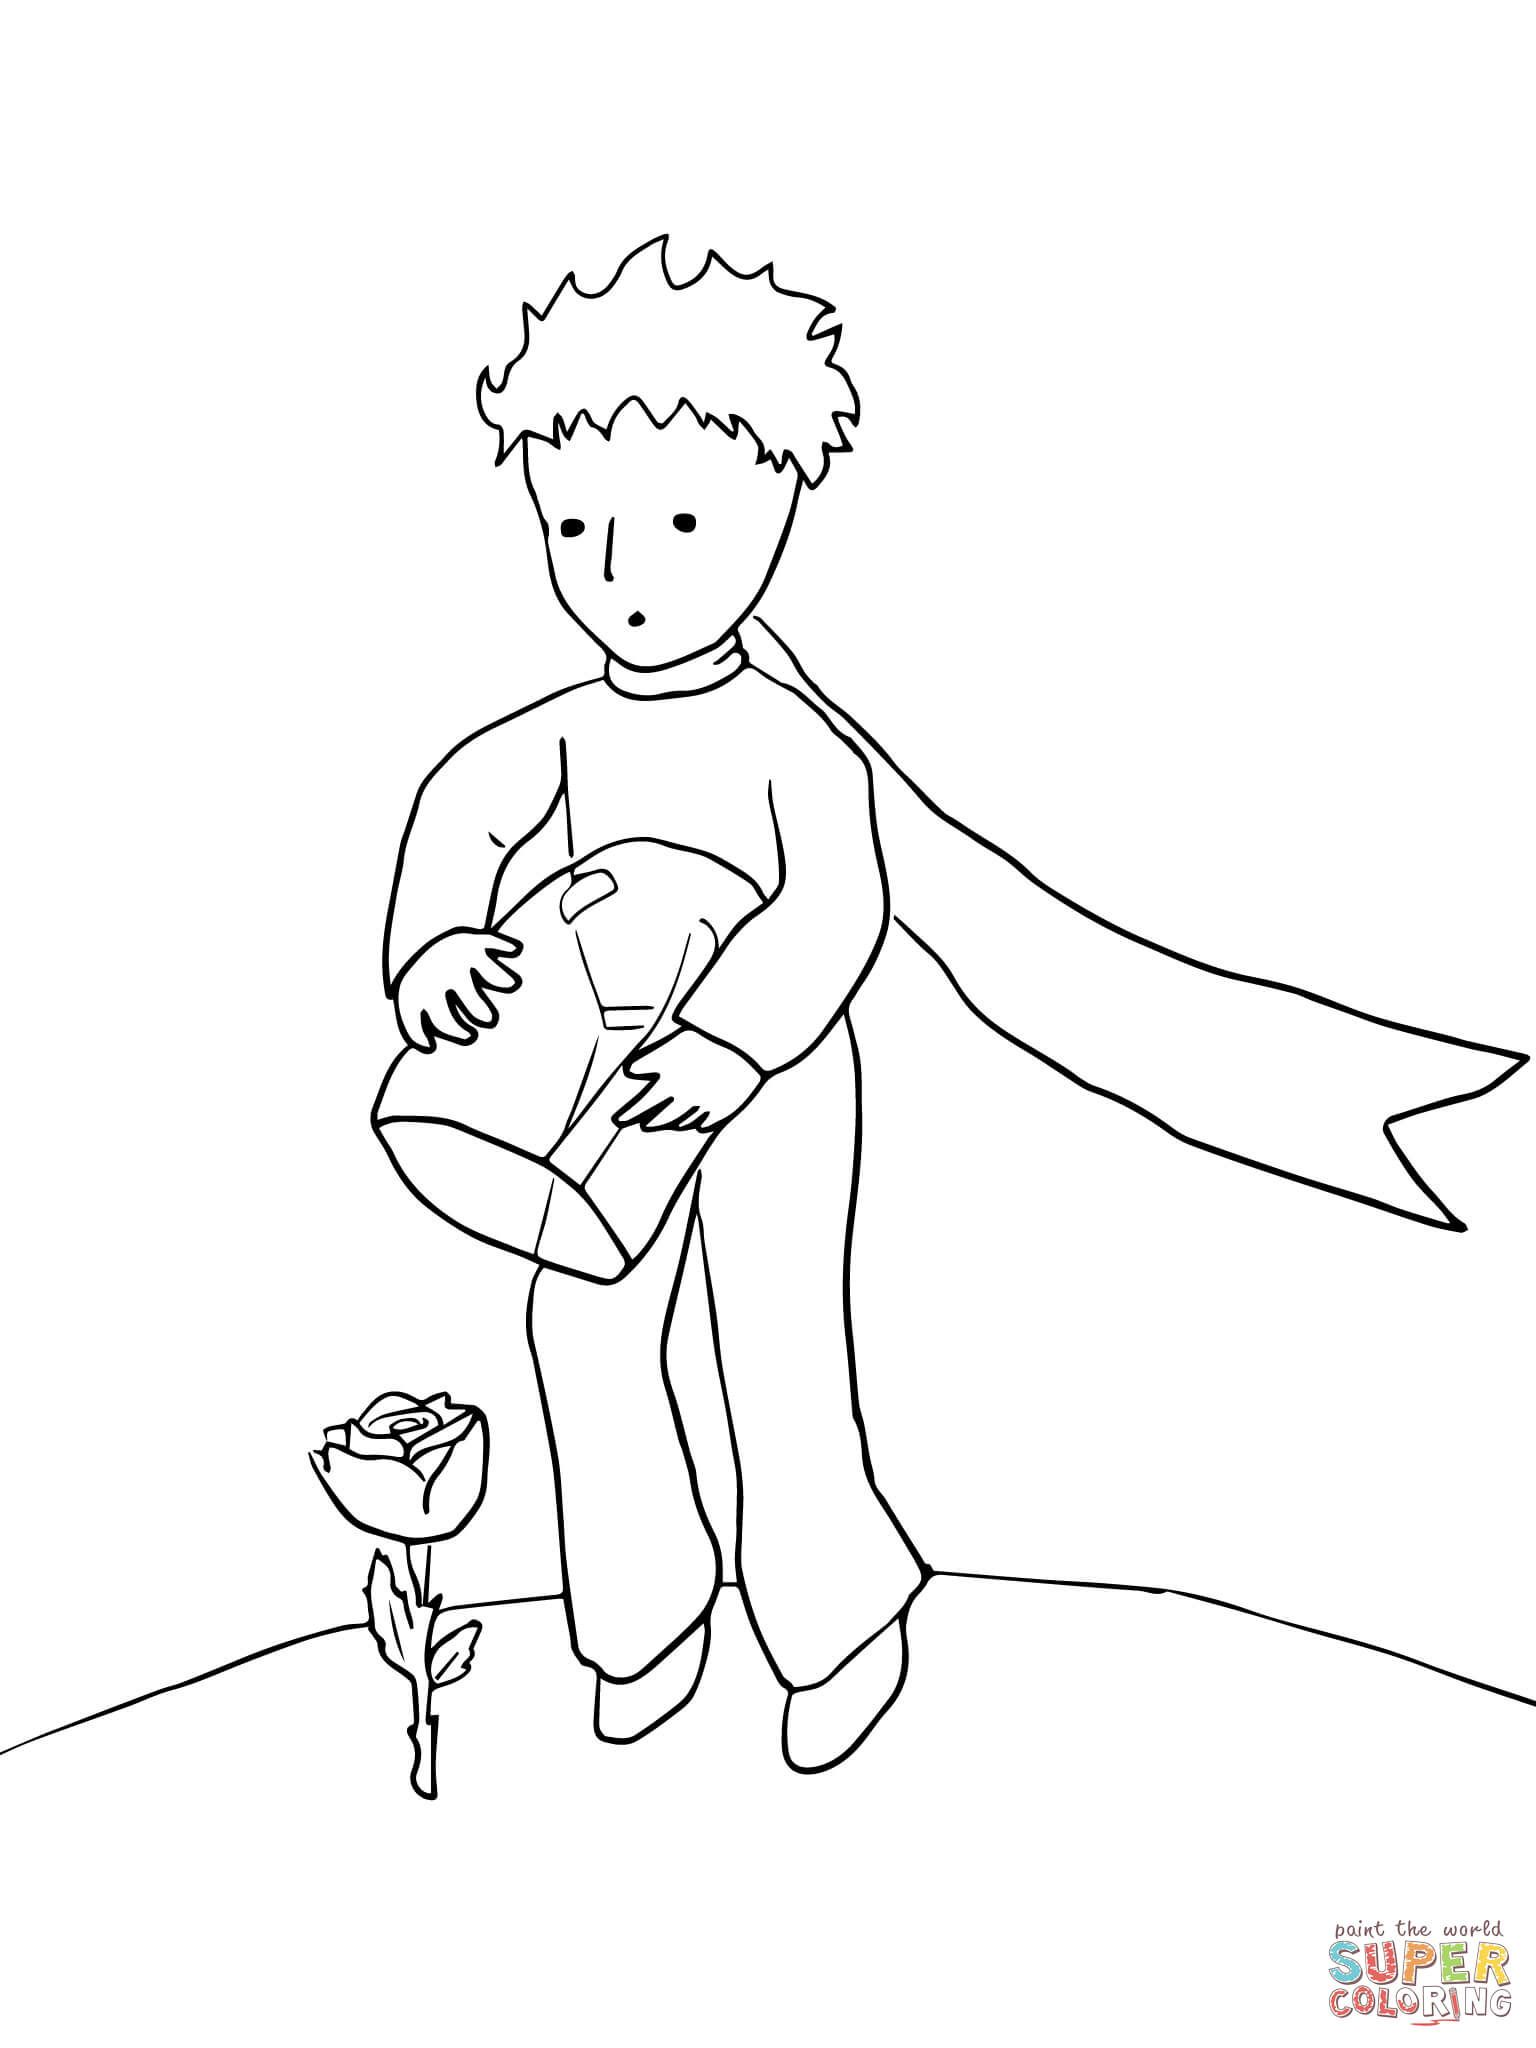 The Little Prince Protects His Rose | Super Coloring | Malux Mãos ...